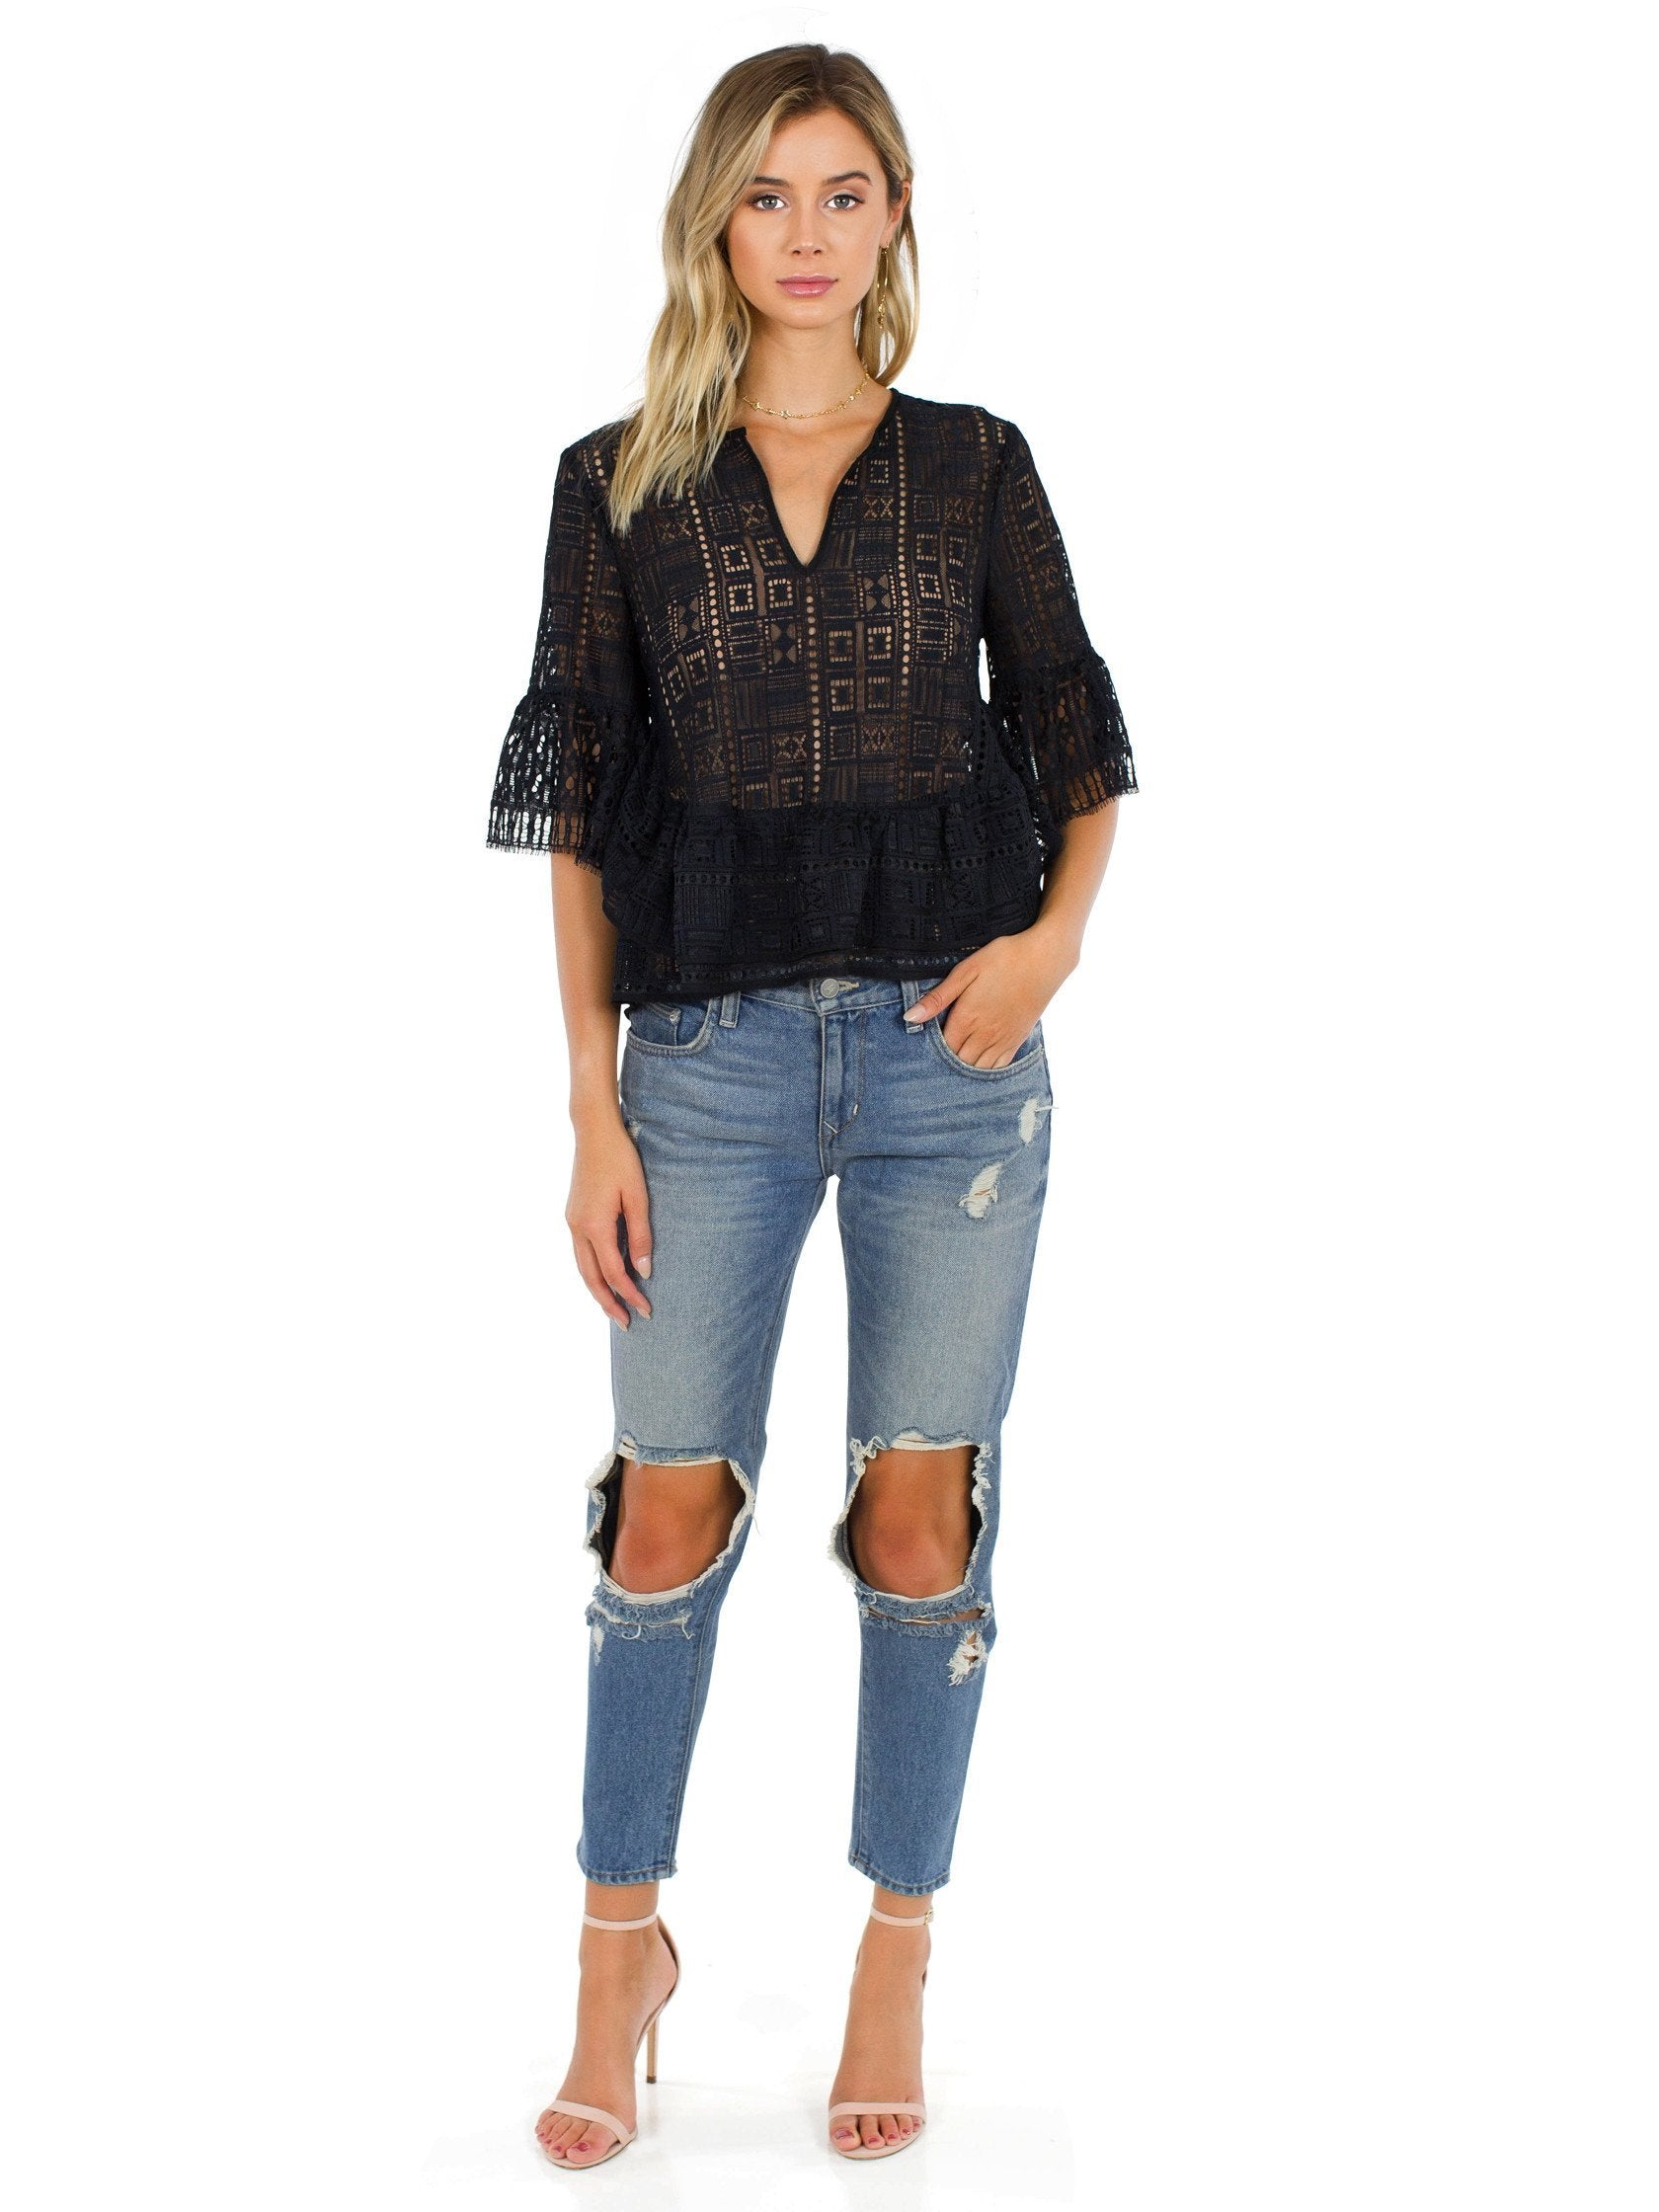 Girl wearing a top rental from BCBGMAXAZRIA called Immane Ruffled Lace Top